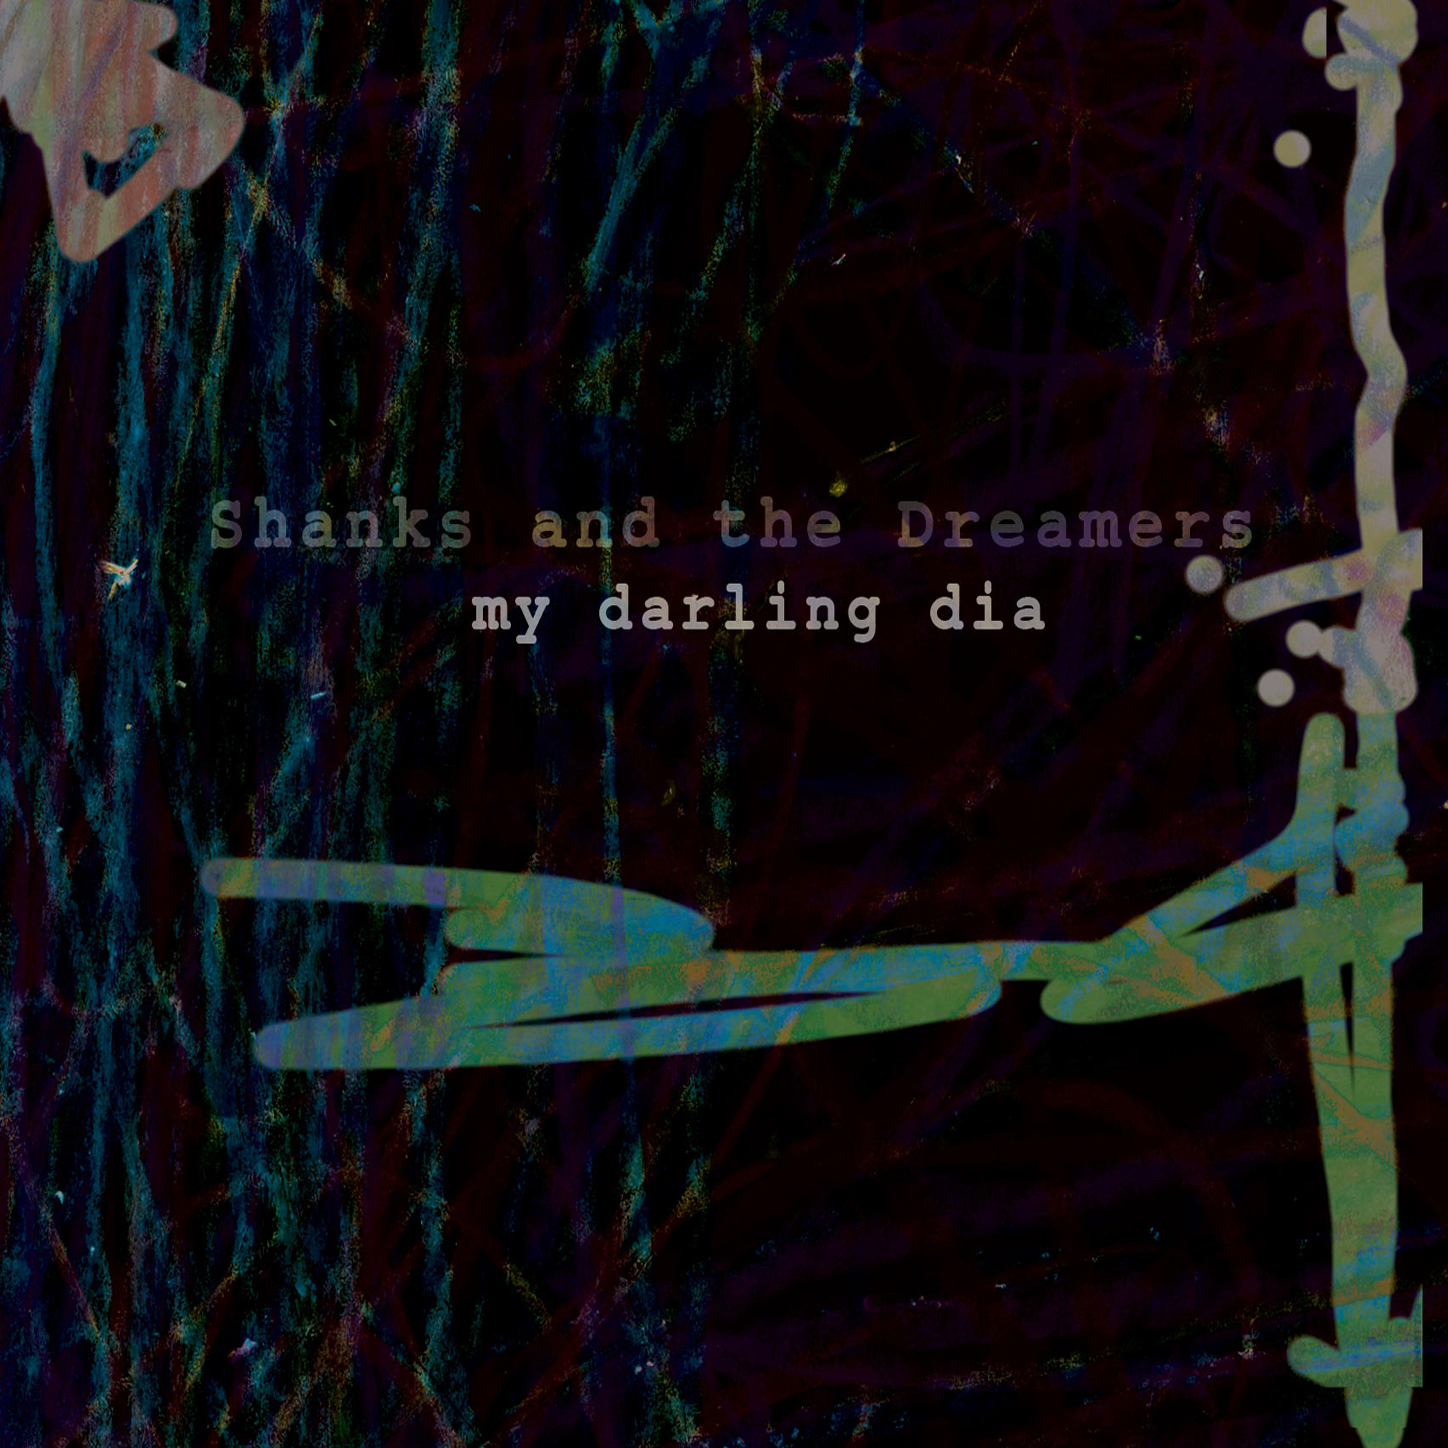 Buy the Shanks and the Dreamers LP,  My Darling Dia  on itunes